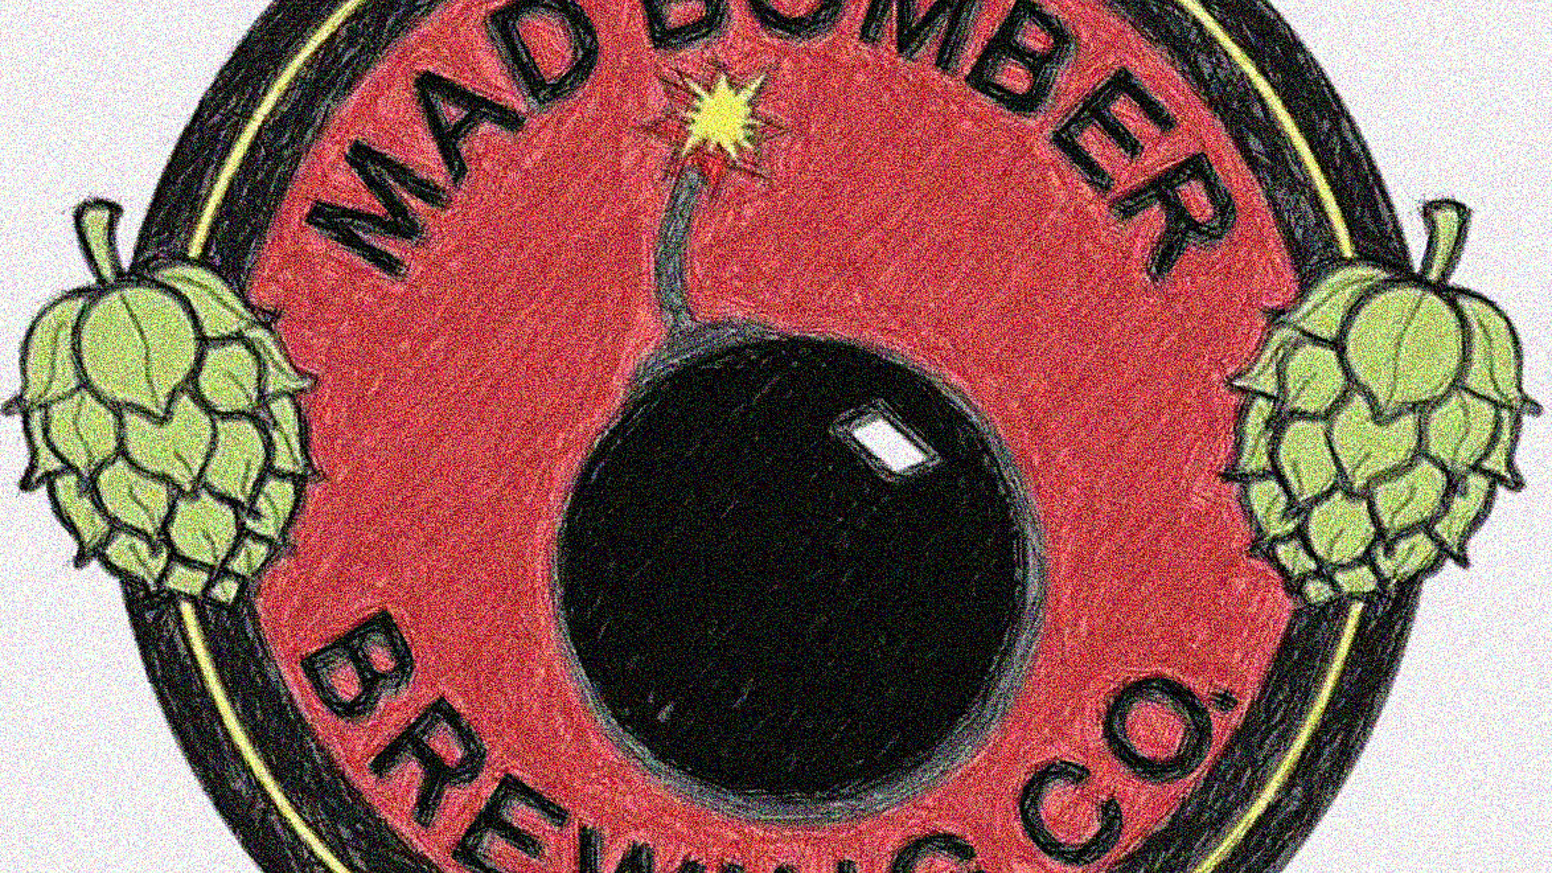 7e2138550f Taking apart bombs is difficult, and so is opening a brewery. Army Bomb  Squad veterans need help for this explosive venture!